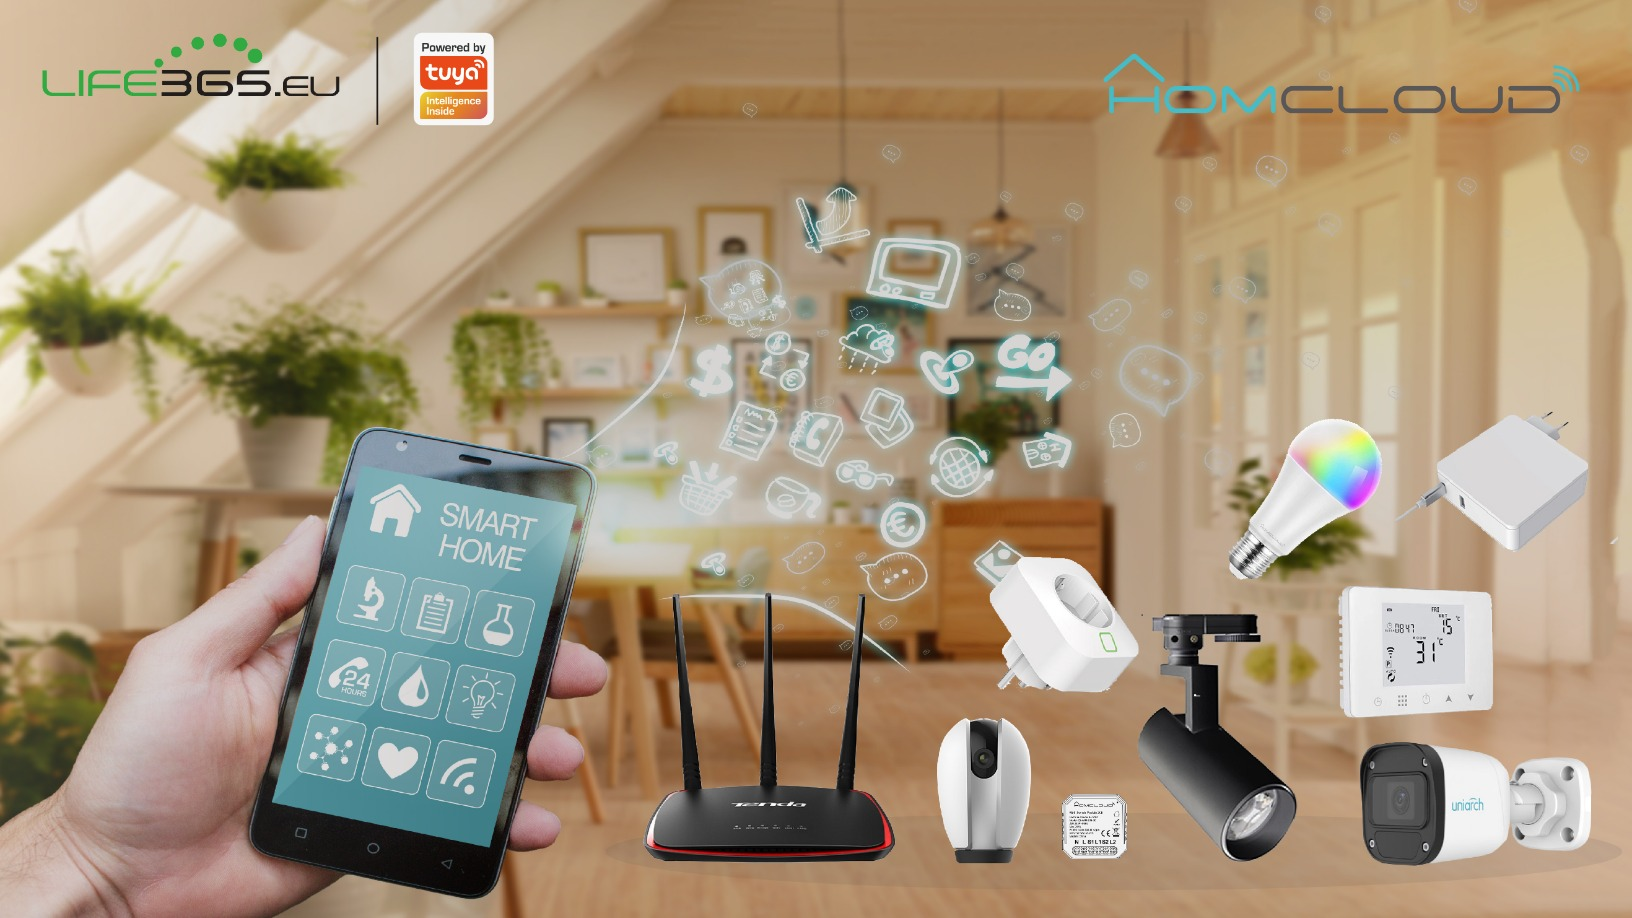 Tuya Smart announces more partnerships, files for IPO in the US